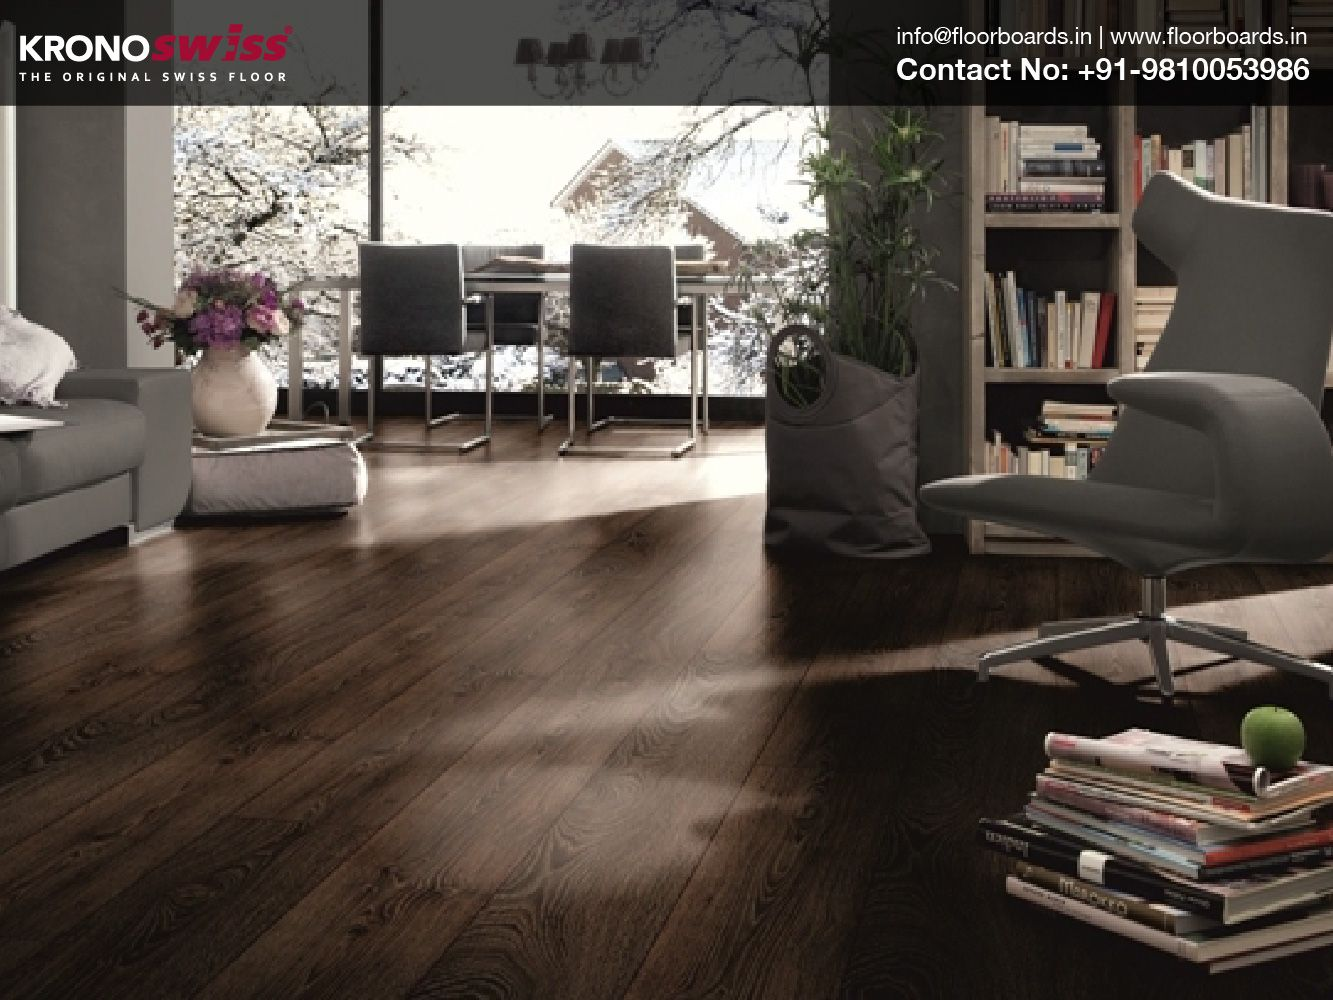 Switzerland S Most Elite Brand Kronoswiss Wooden Flooring Is Now Available In India Best Quality Long Warranty Easy Inst Commercial Flooring Flooring Floor Design